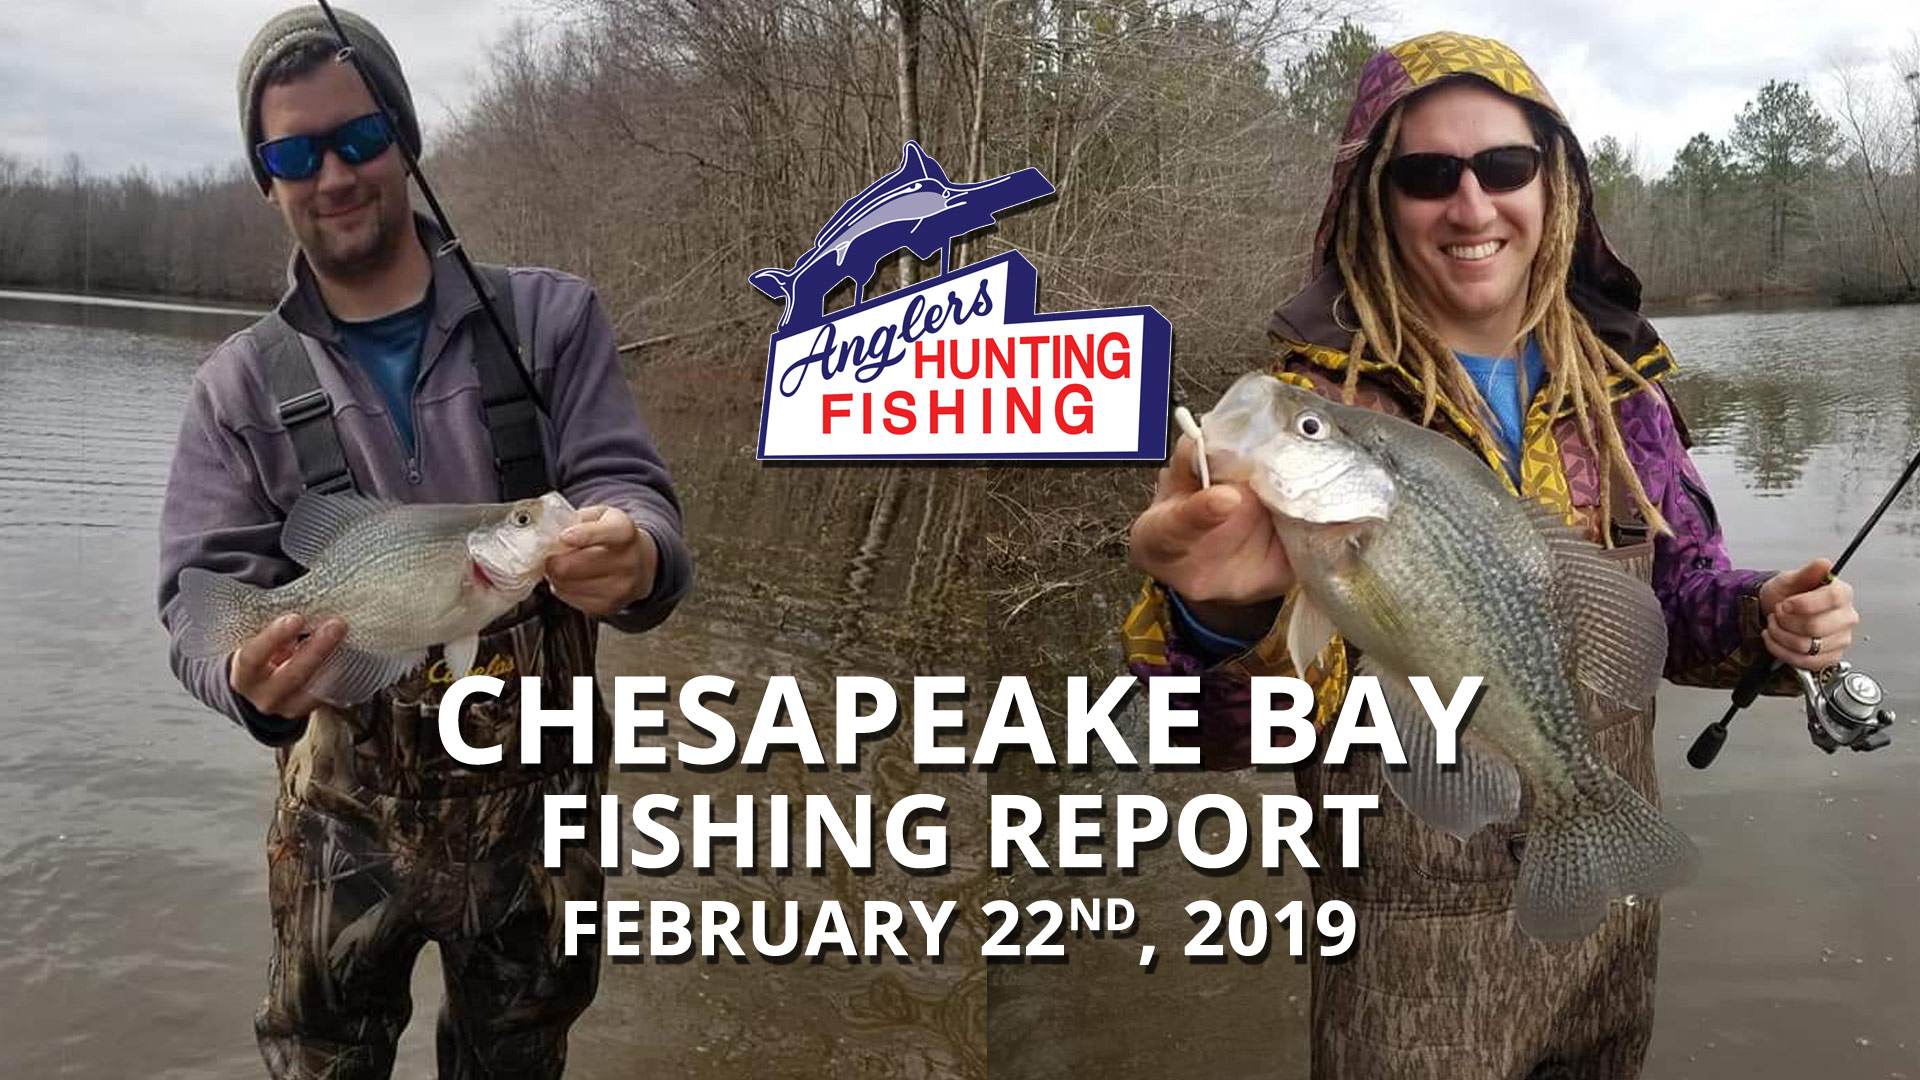 Chesapeake Bay Fishing Report - February 22nd, 2019